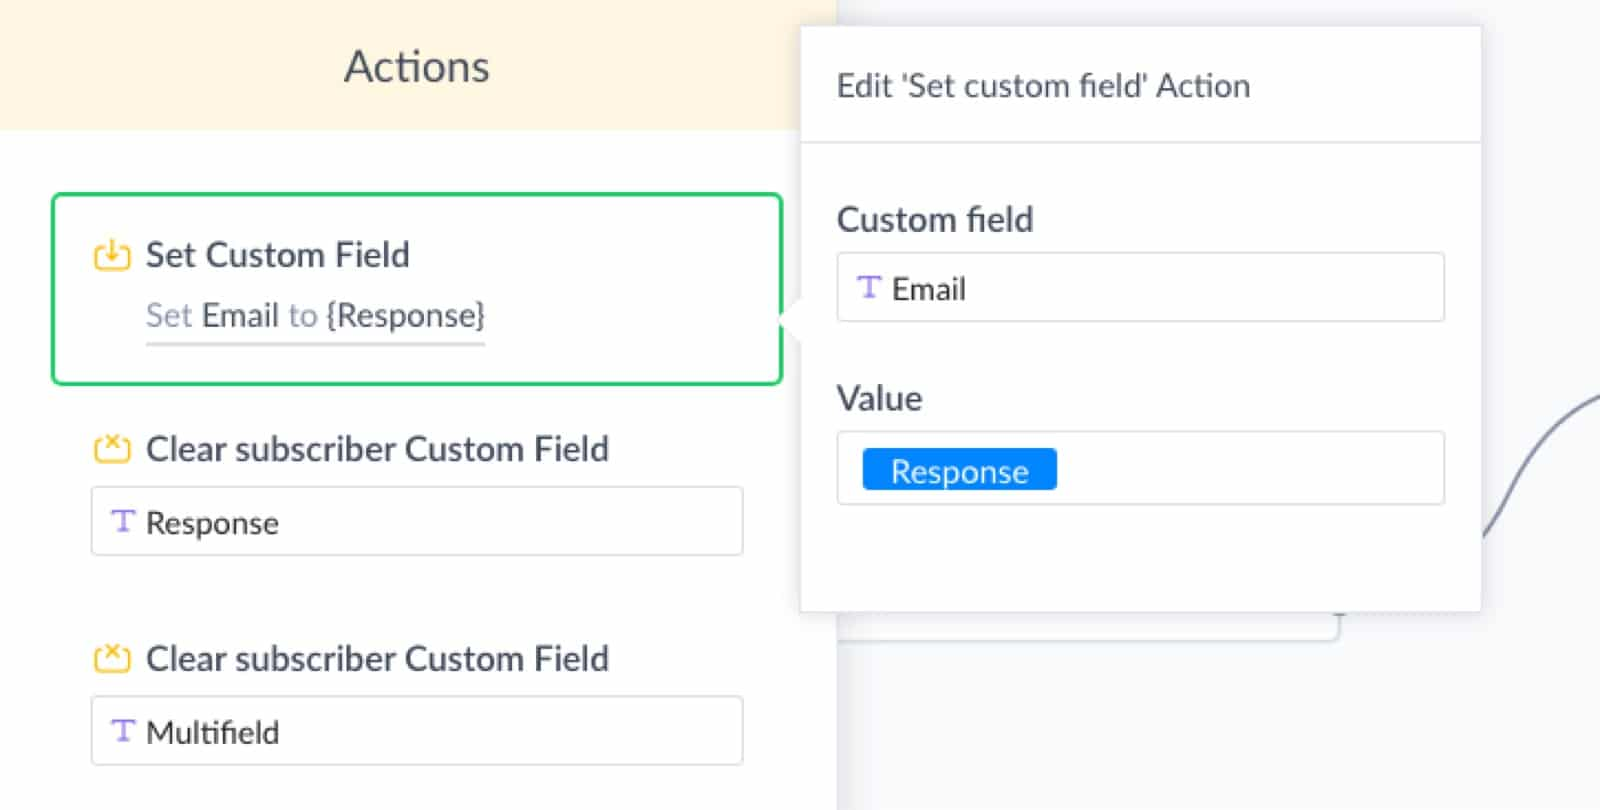 Save response to email custom field in ManyChat